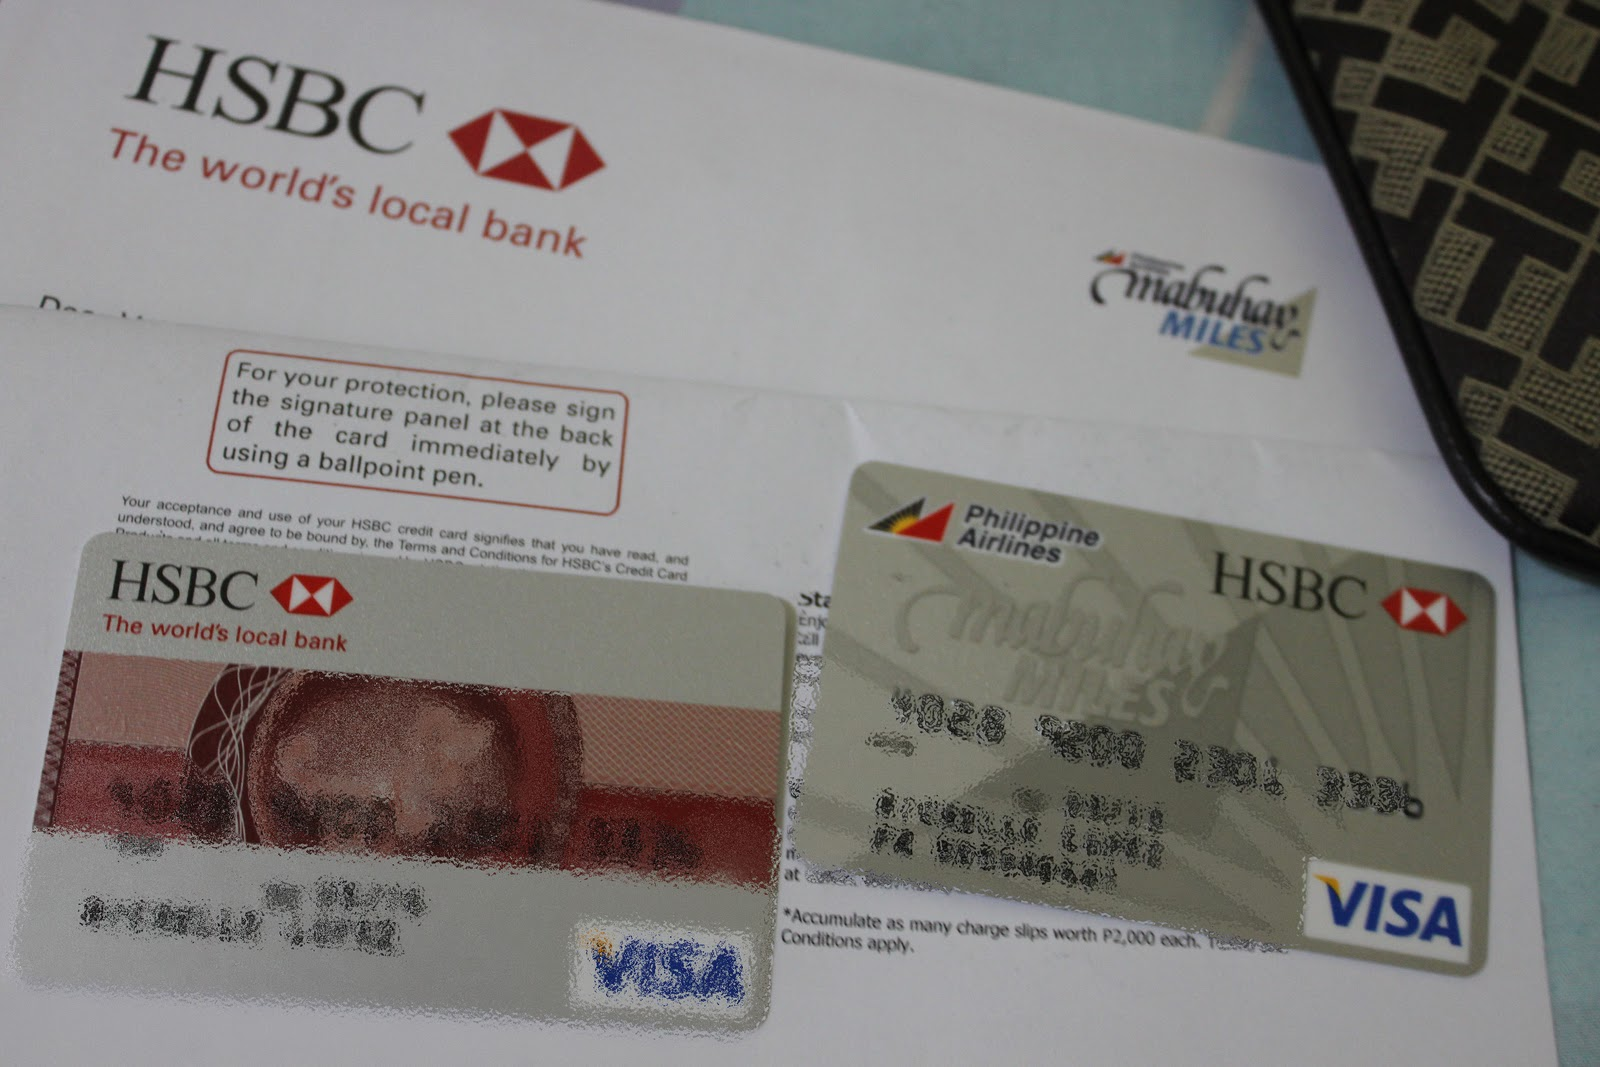 hsbc credit card application philippines online